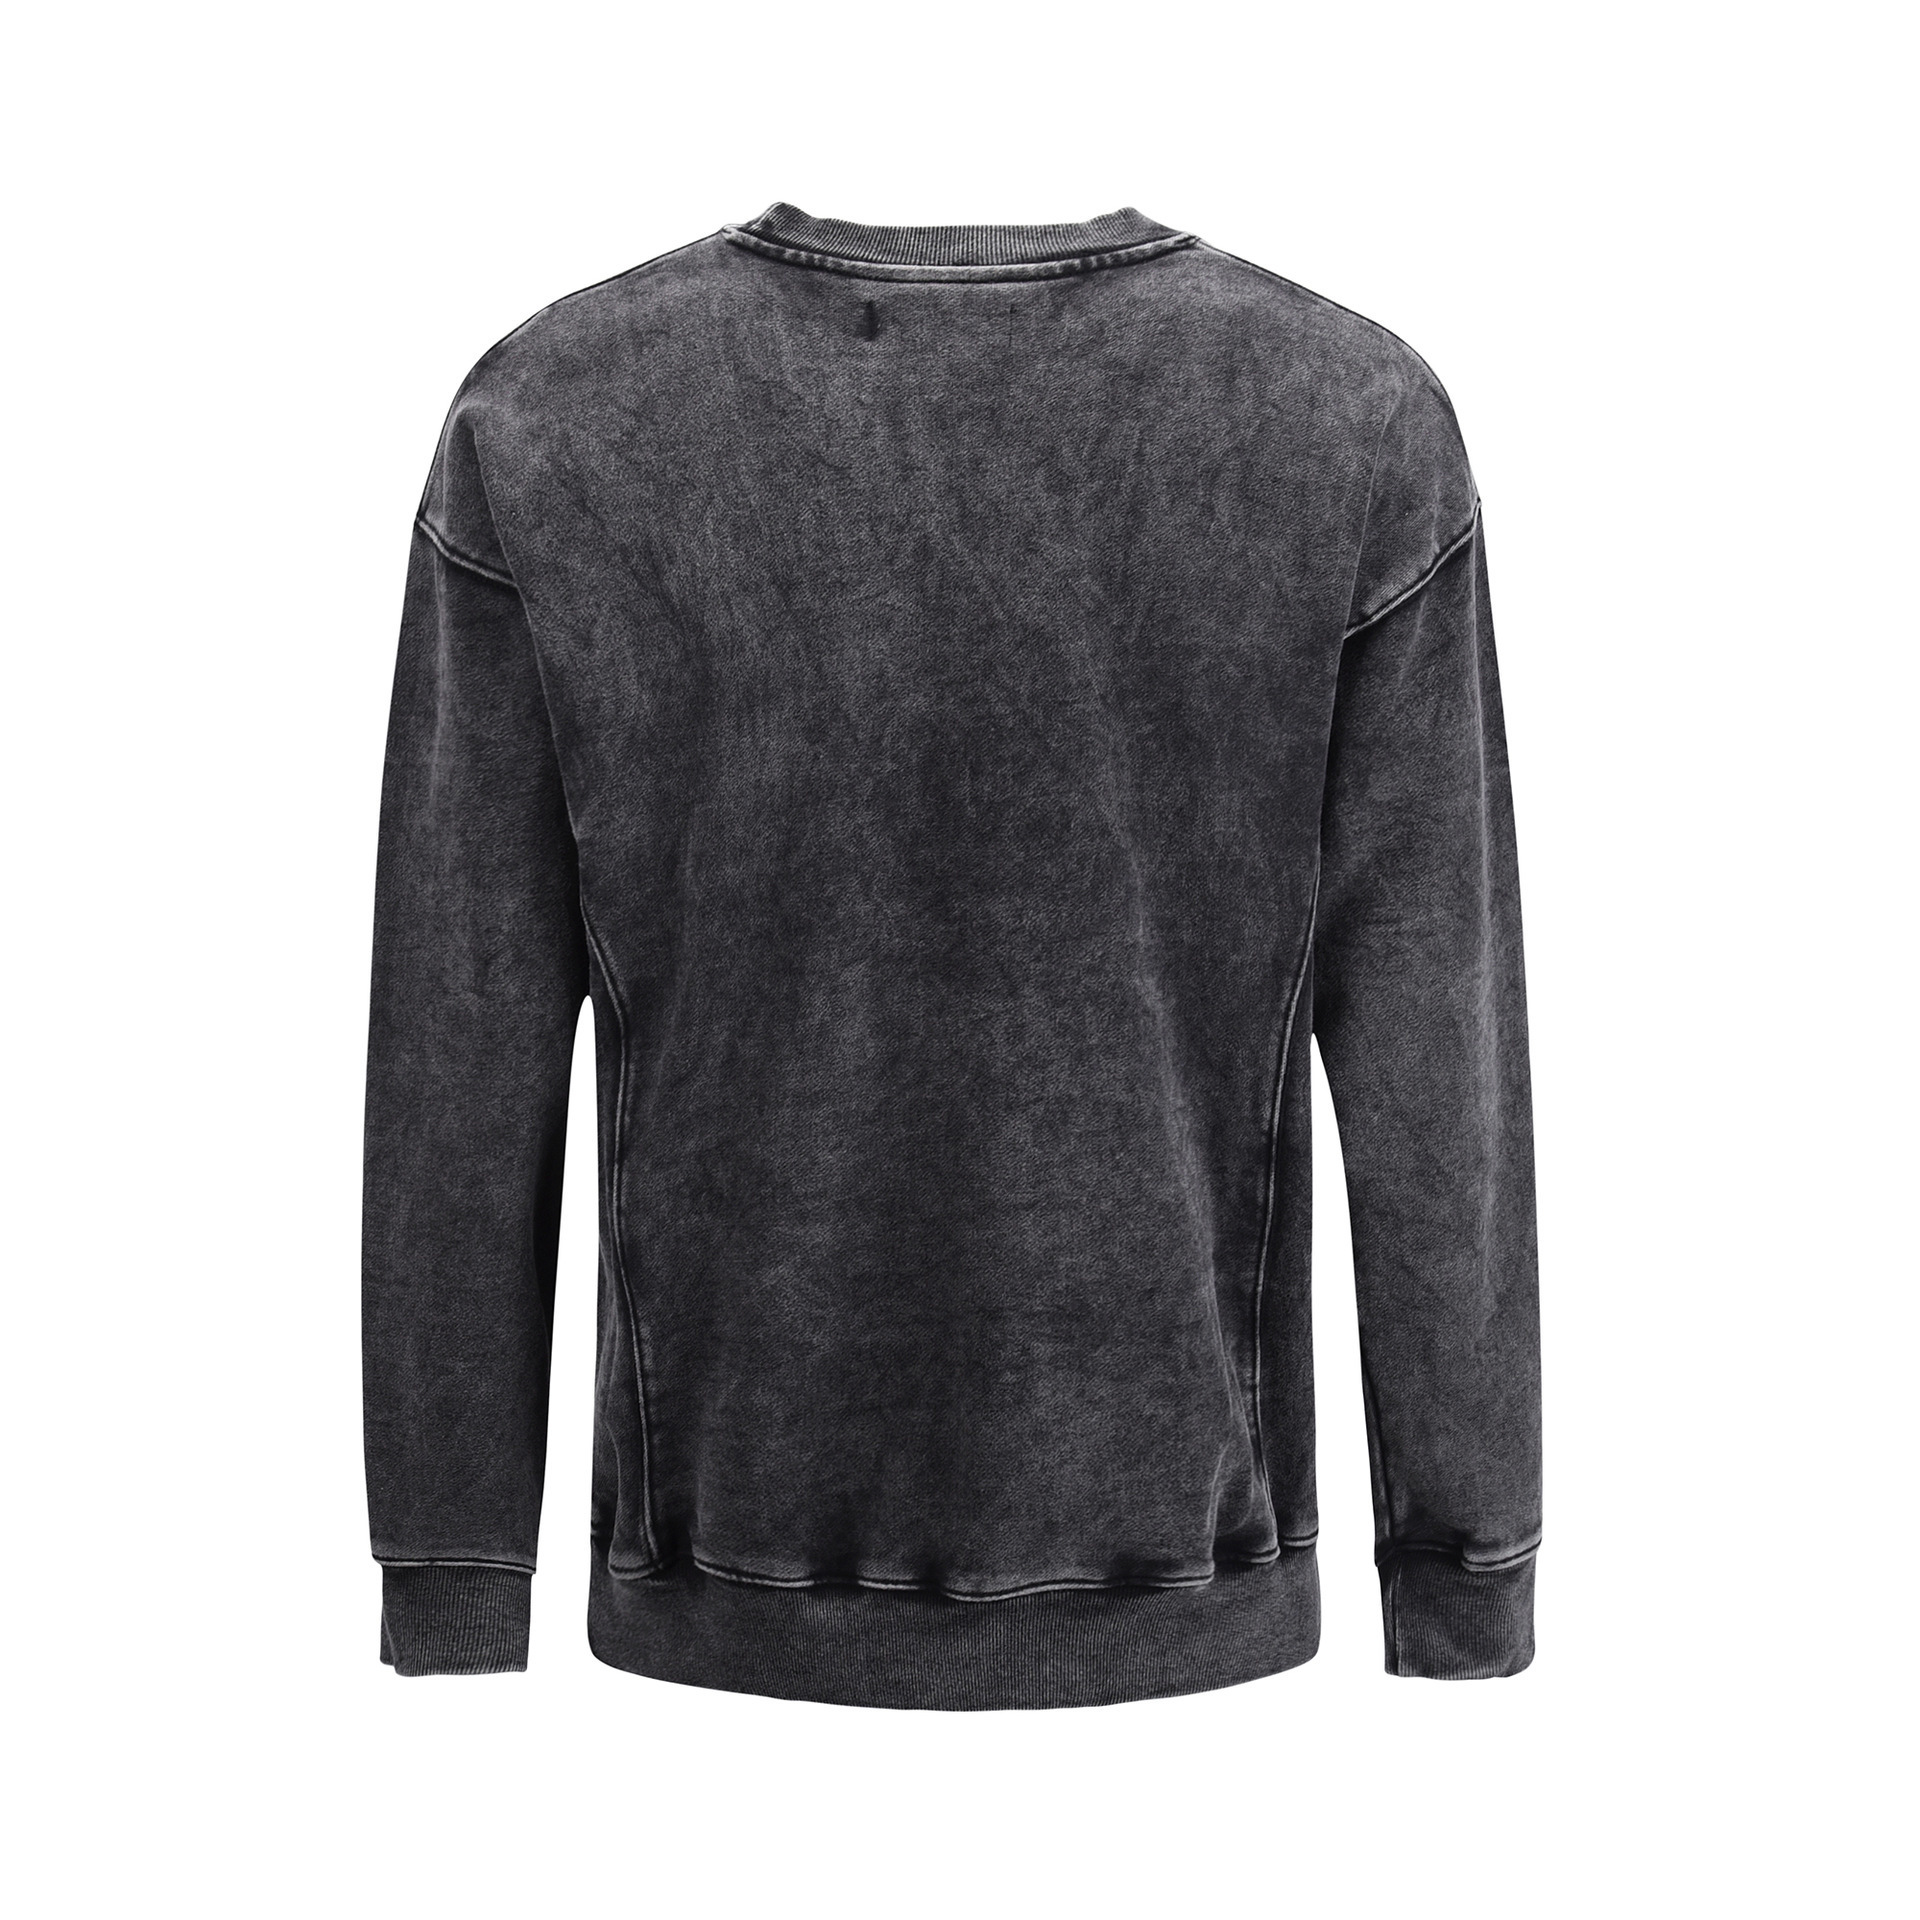 Cool2019 Street High Wash Do Used Batik Technology High Can Serious Pure Plumule Circle Material Easy Round Neck Pullover Sweater